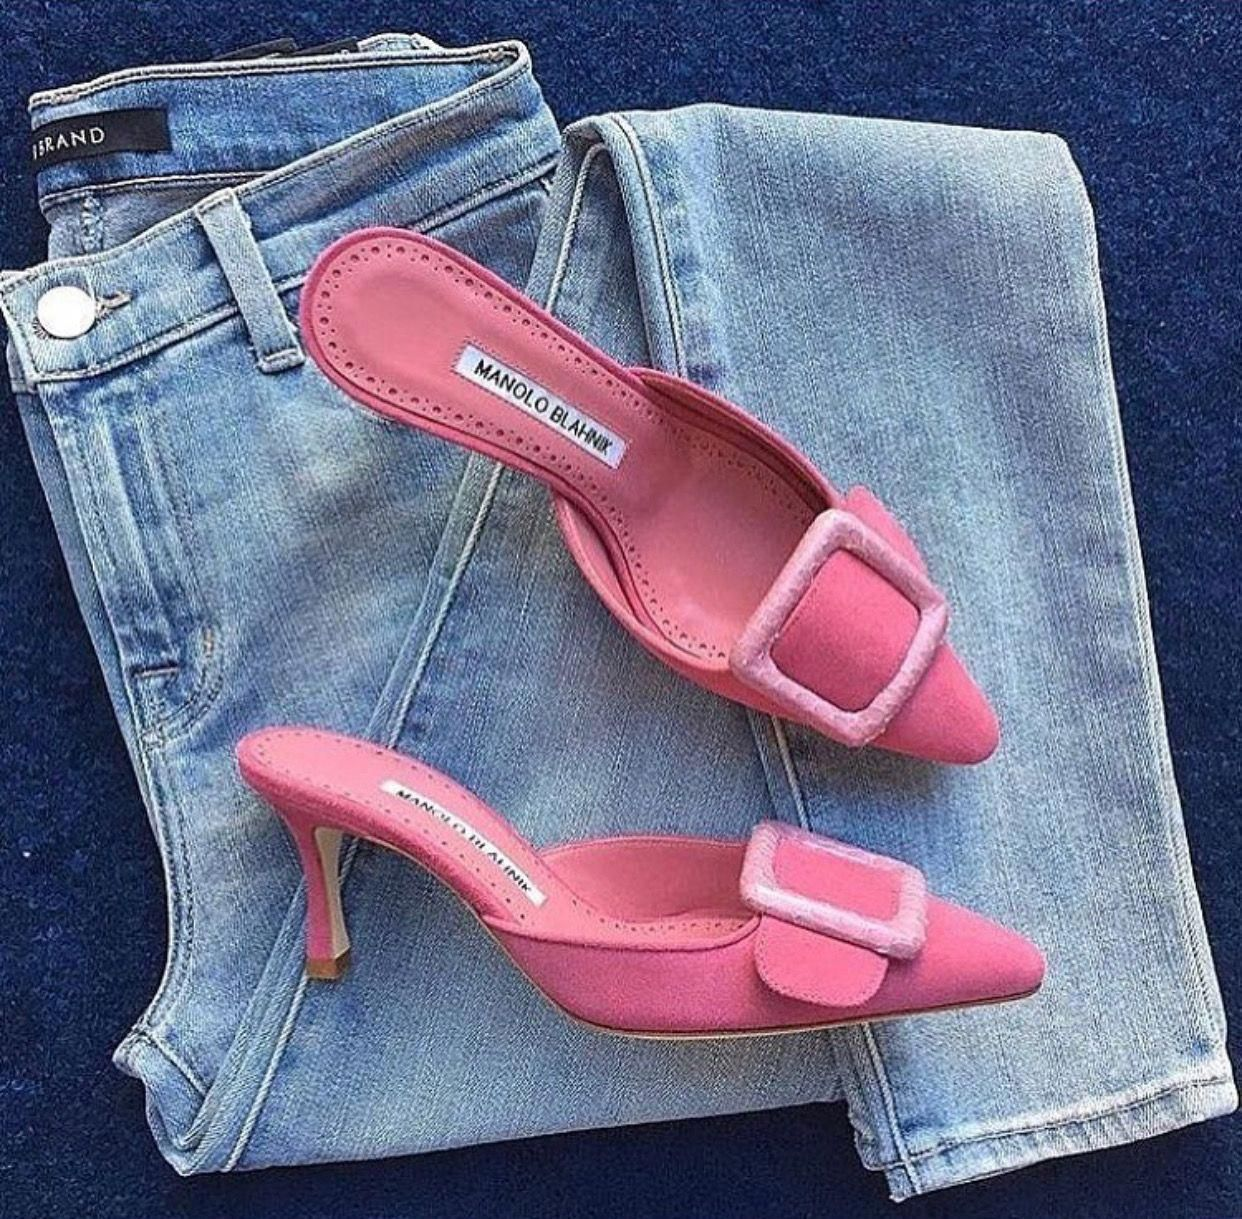 Summer Shoes Shoes For Summer Fun Shoes Trendy Shoes Bold Shoes 2000s Shoes Editorial Shoes Instagram Shoes Shoes In 2020 Heels Vintage Heels Aesthetic Shoes